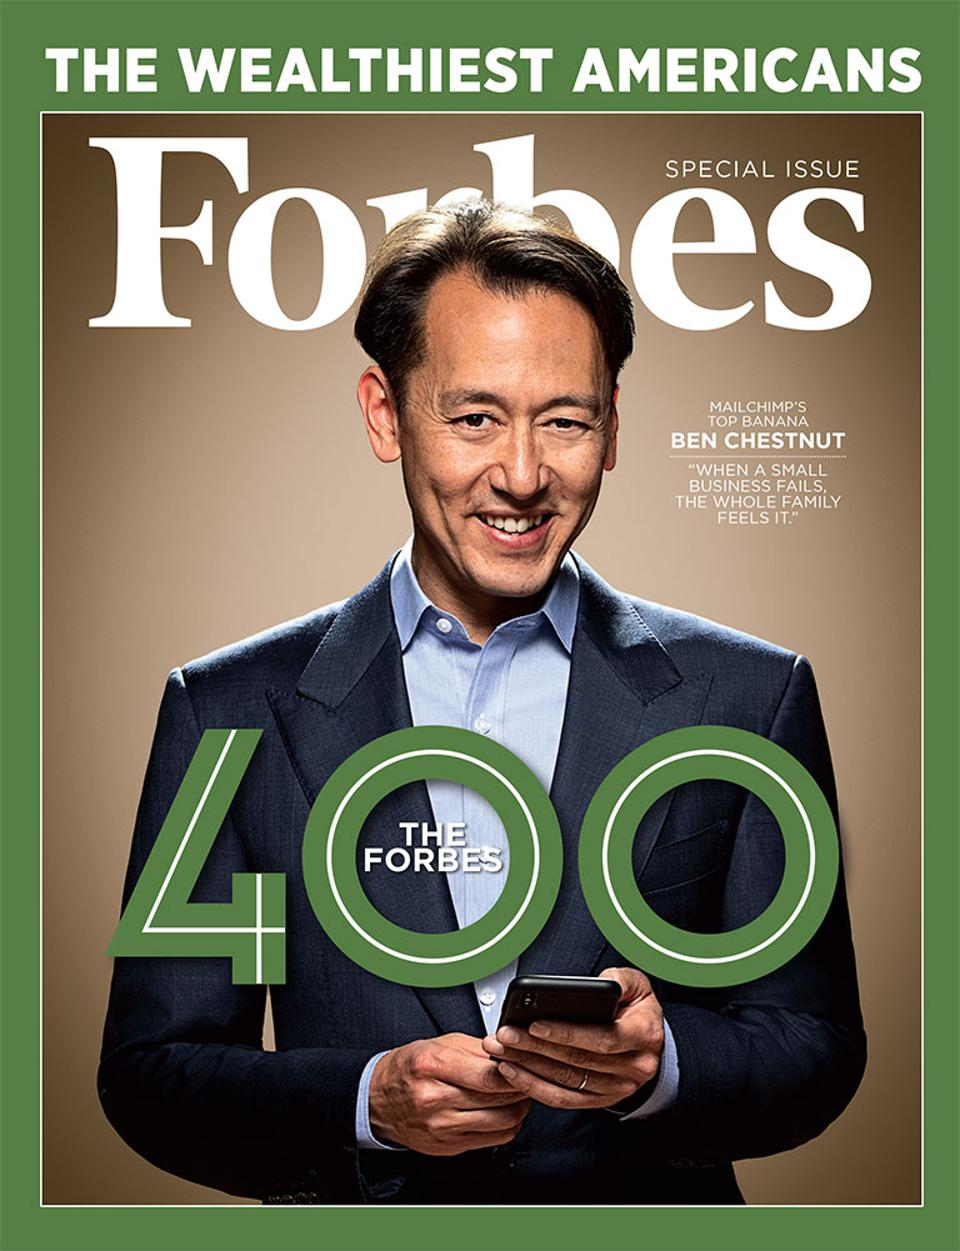 The October 31, 2018 issue of Forbes featuring MailChimp's Ben Chestnut.